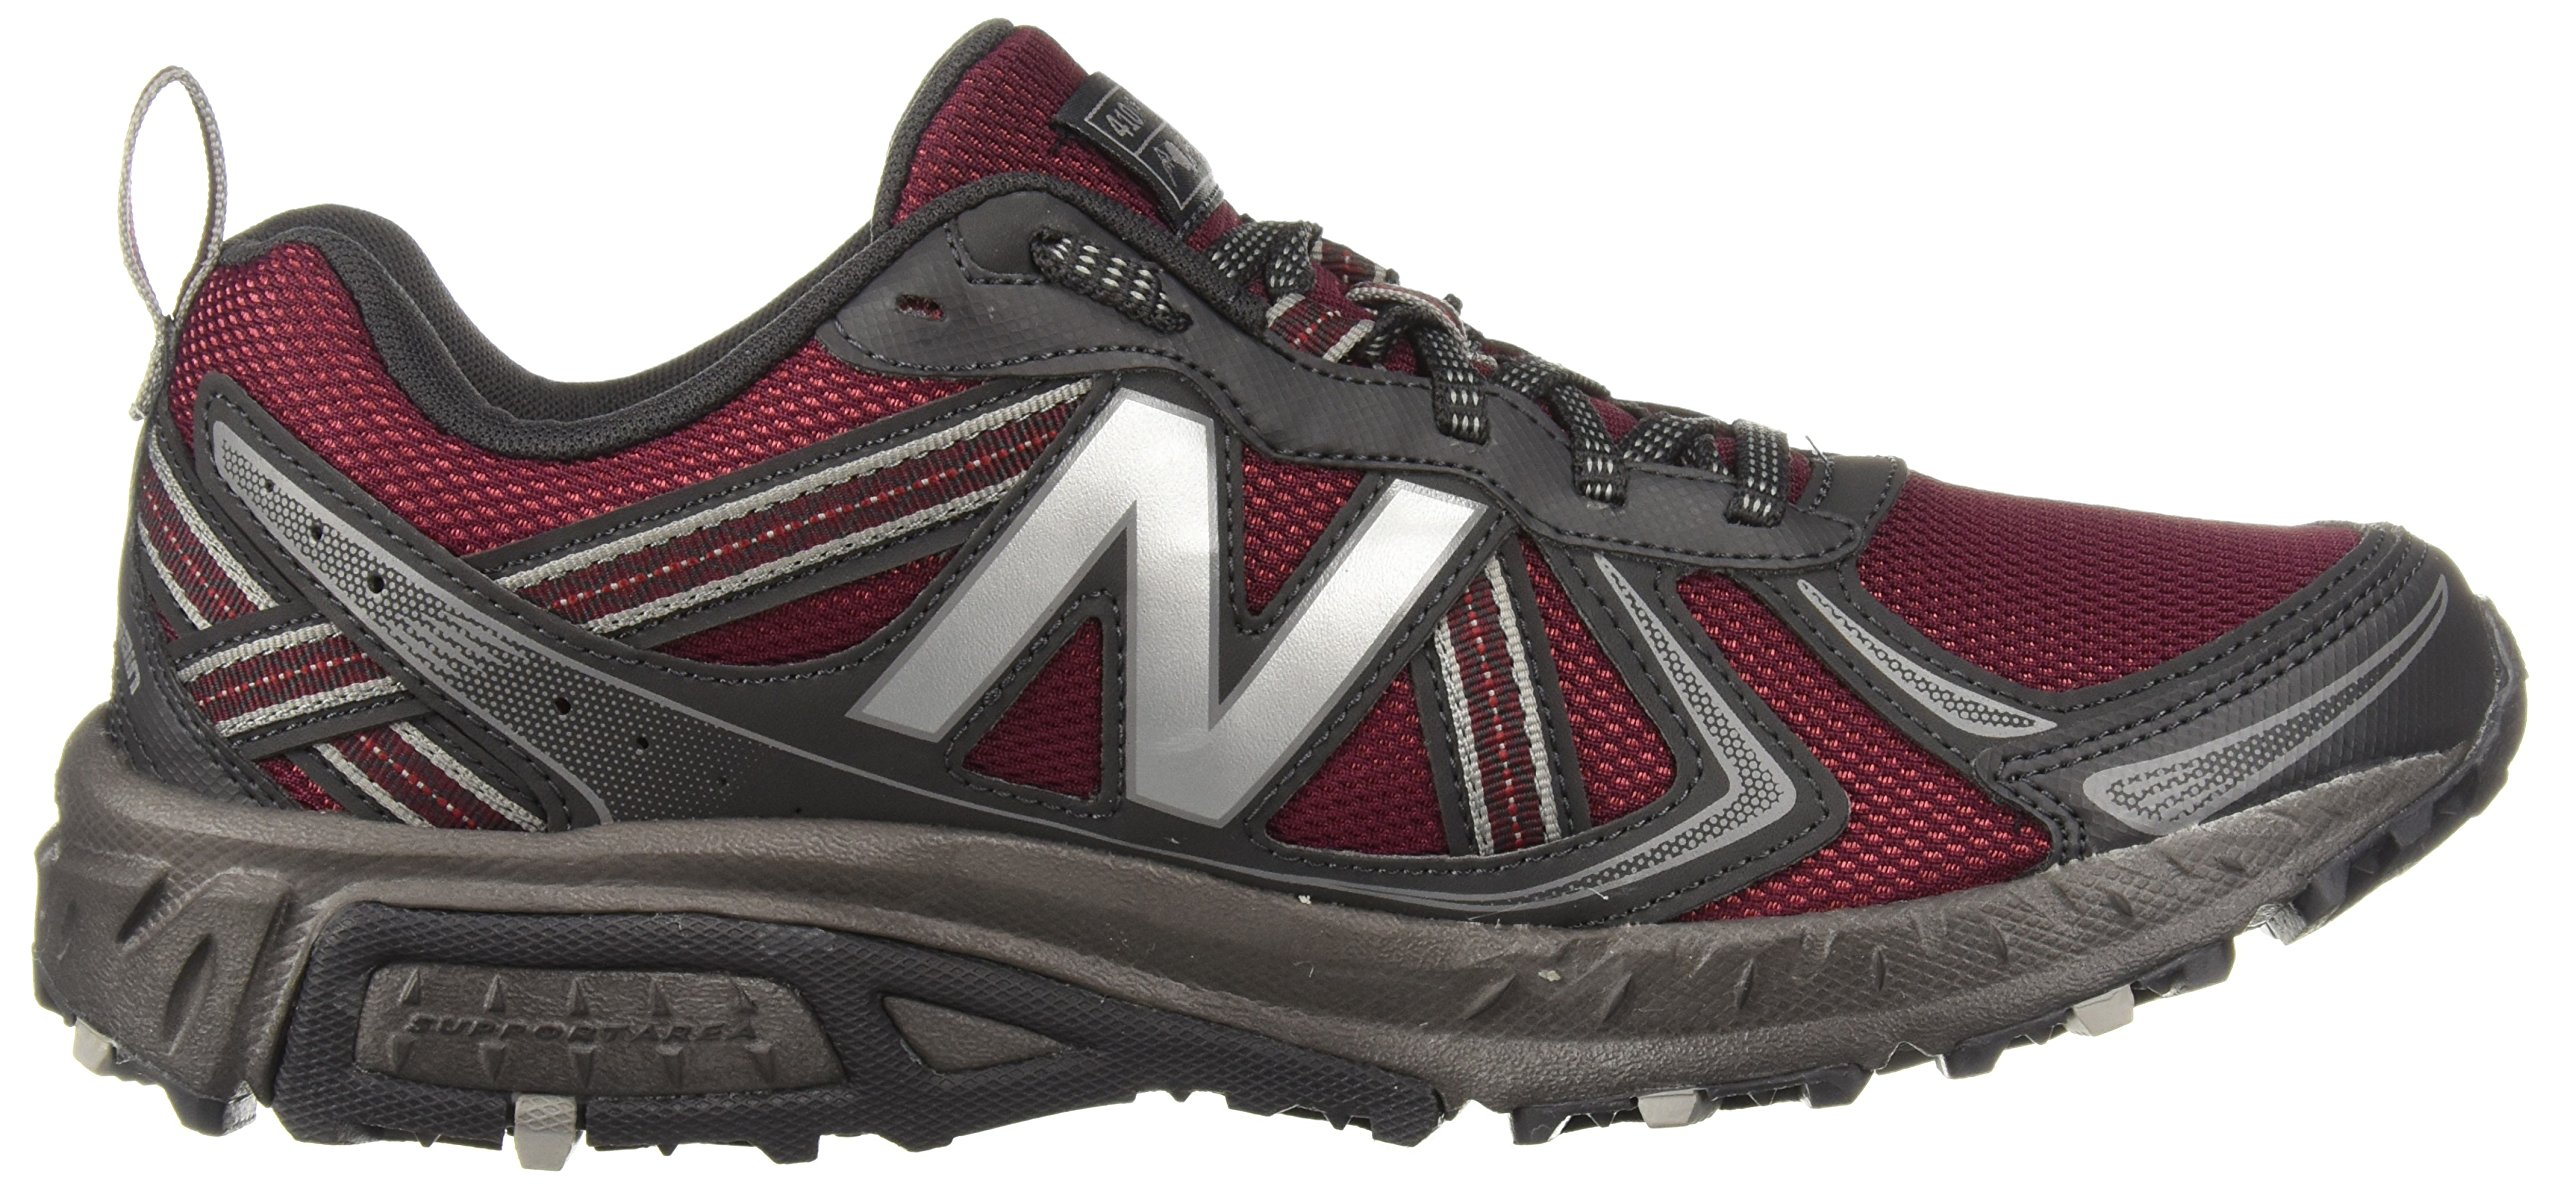 New Balance Men's MT410v5 Cushioning Trail Running Shoe, Oxblood, 7 D US by New Balance (Image #6)